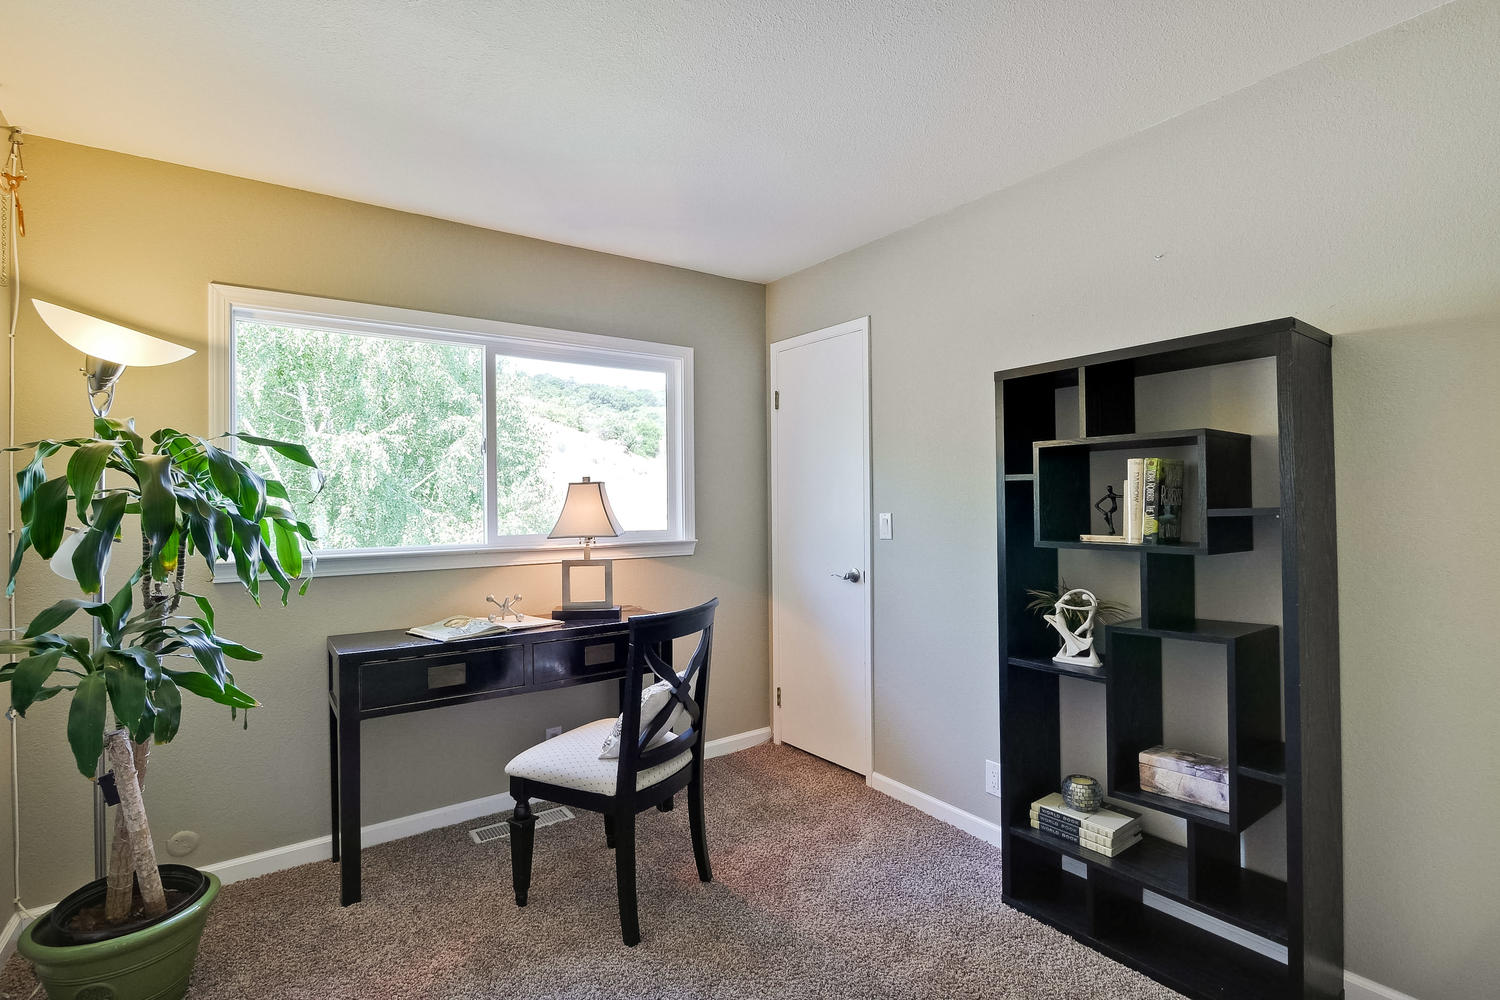 820 Colleen Dr San Jose CA-large-051-56-Bedroom-1500x1000-72dpi